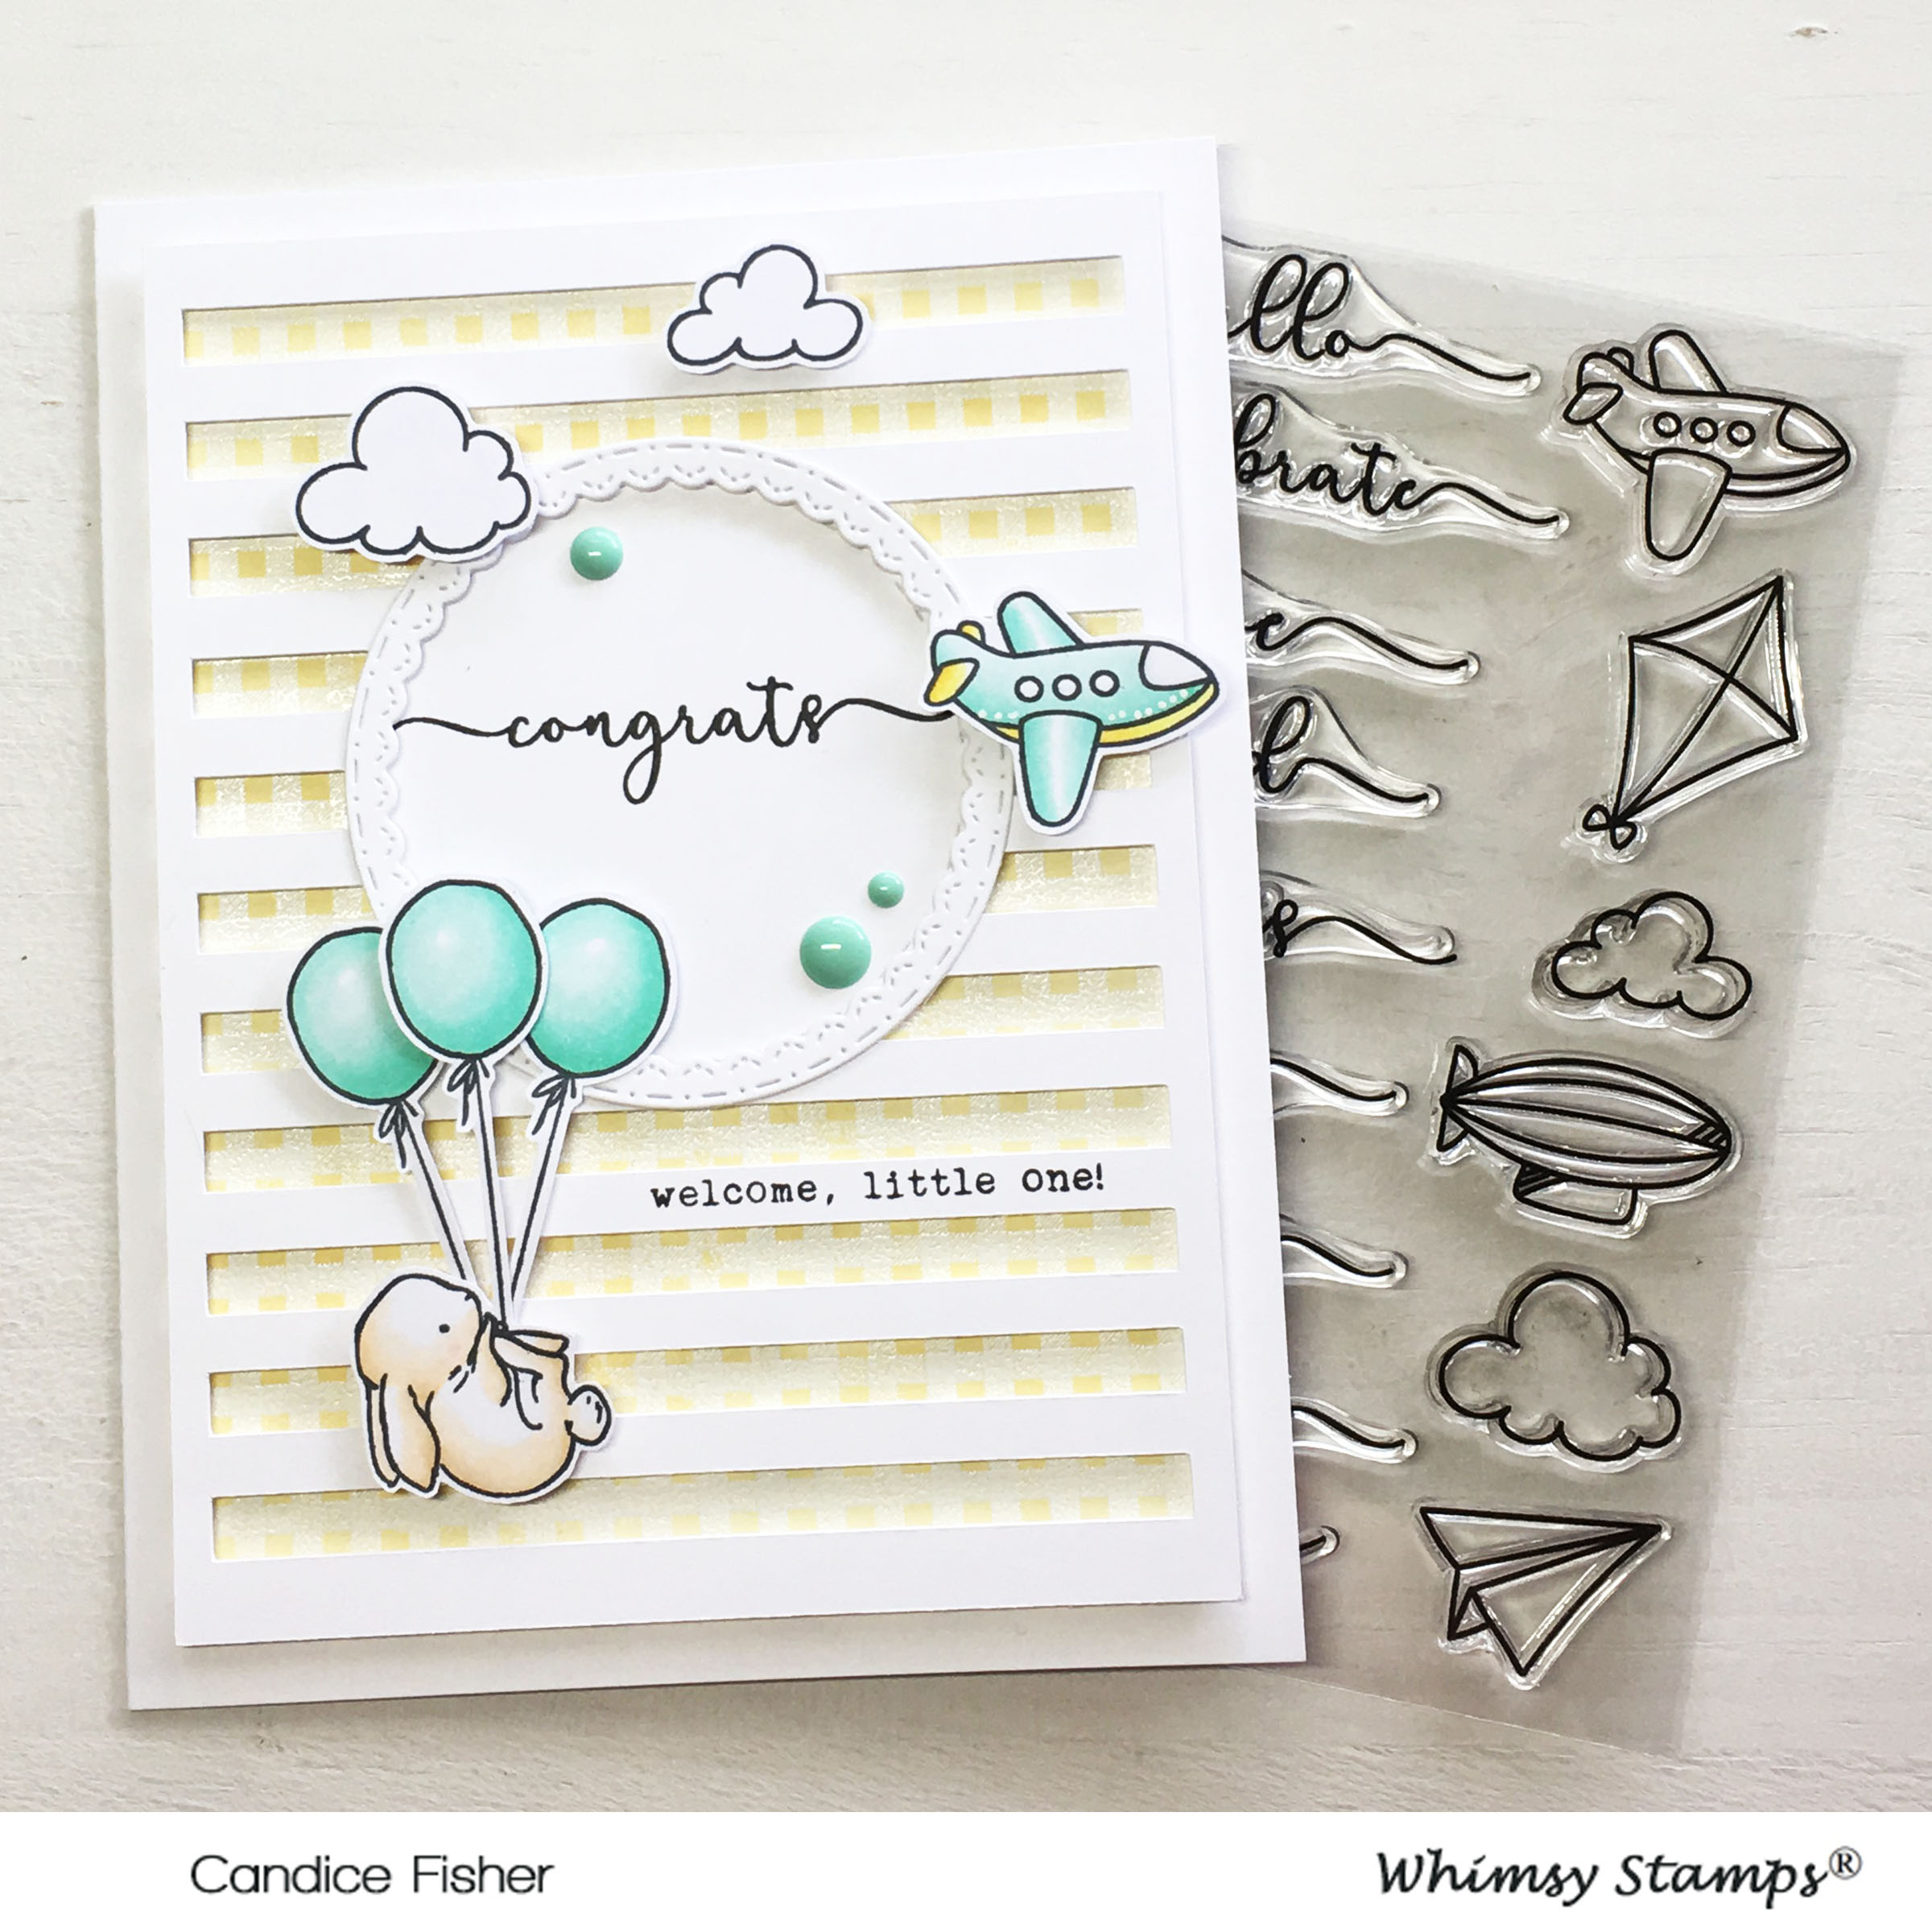 GD whimsy stamps card 4 with stamp set